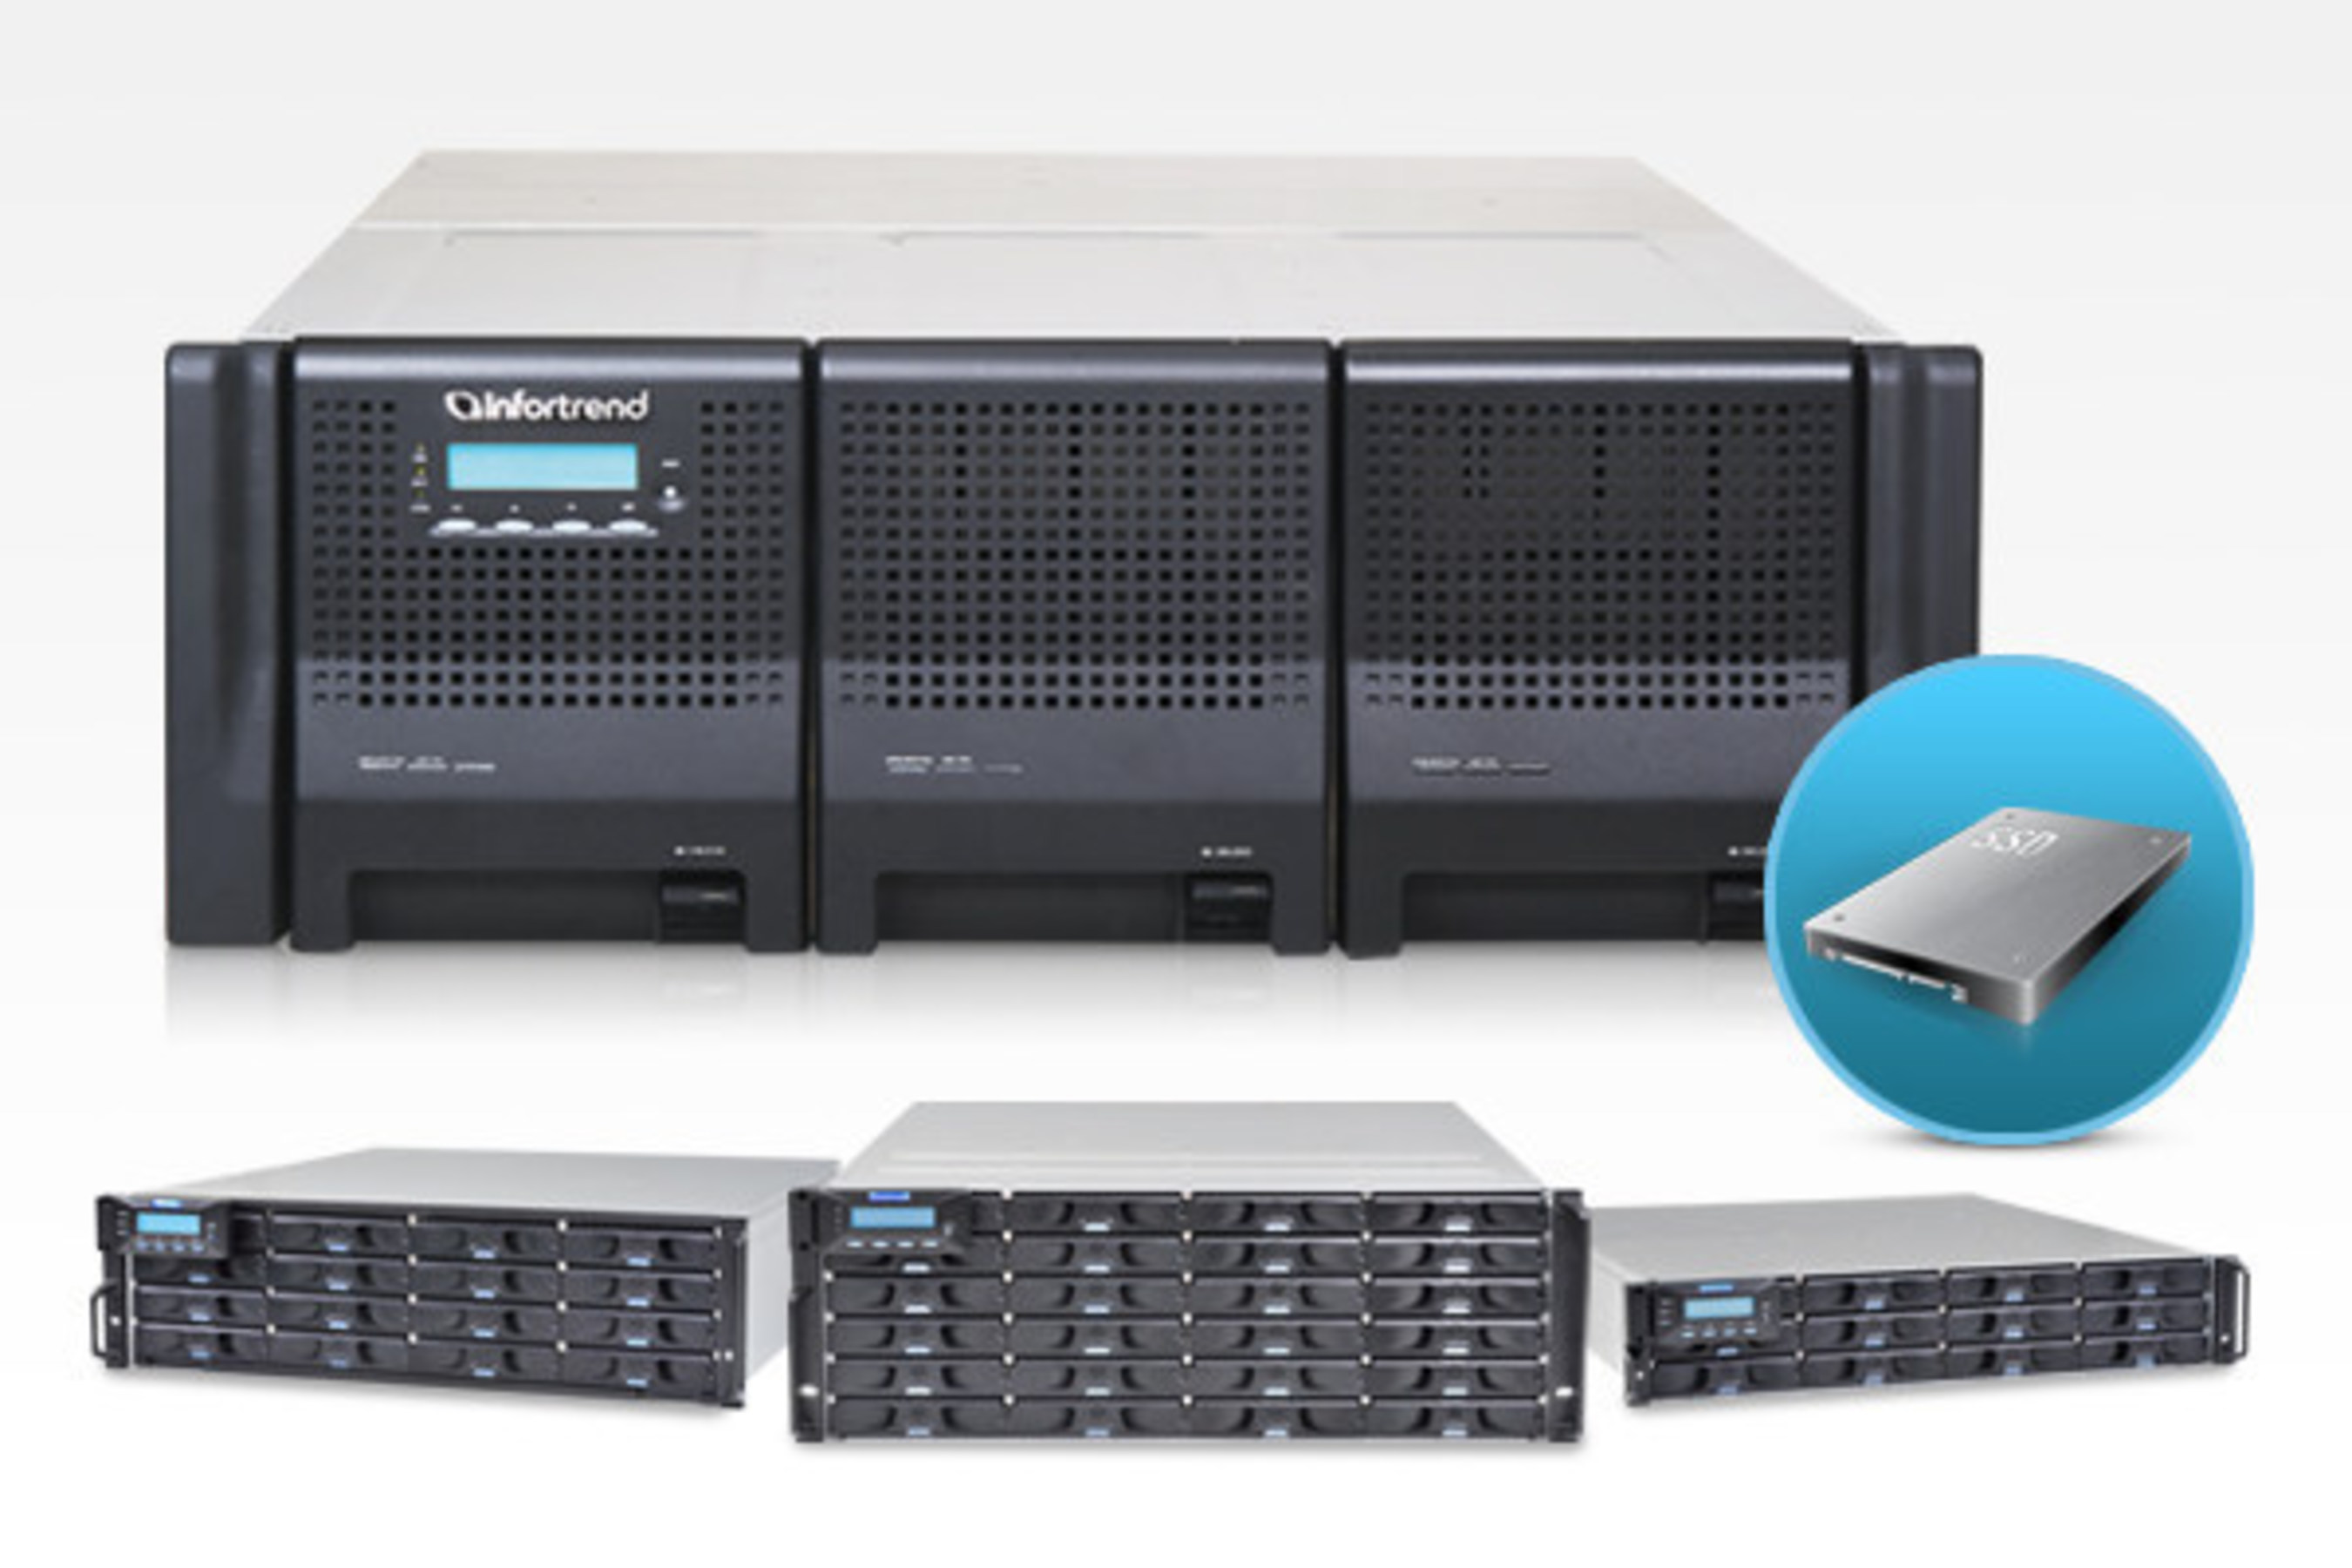 Infortrend EonStor DS 3000T RAID systems and SSD solutions